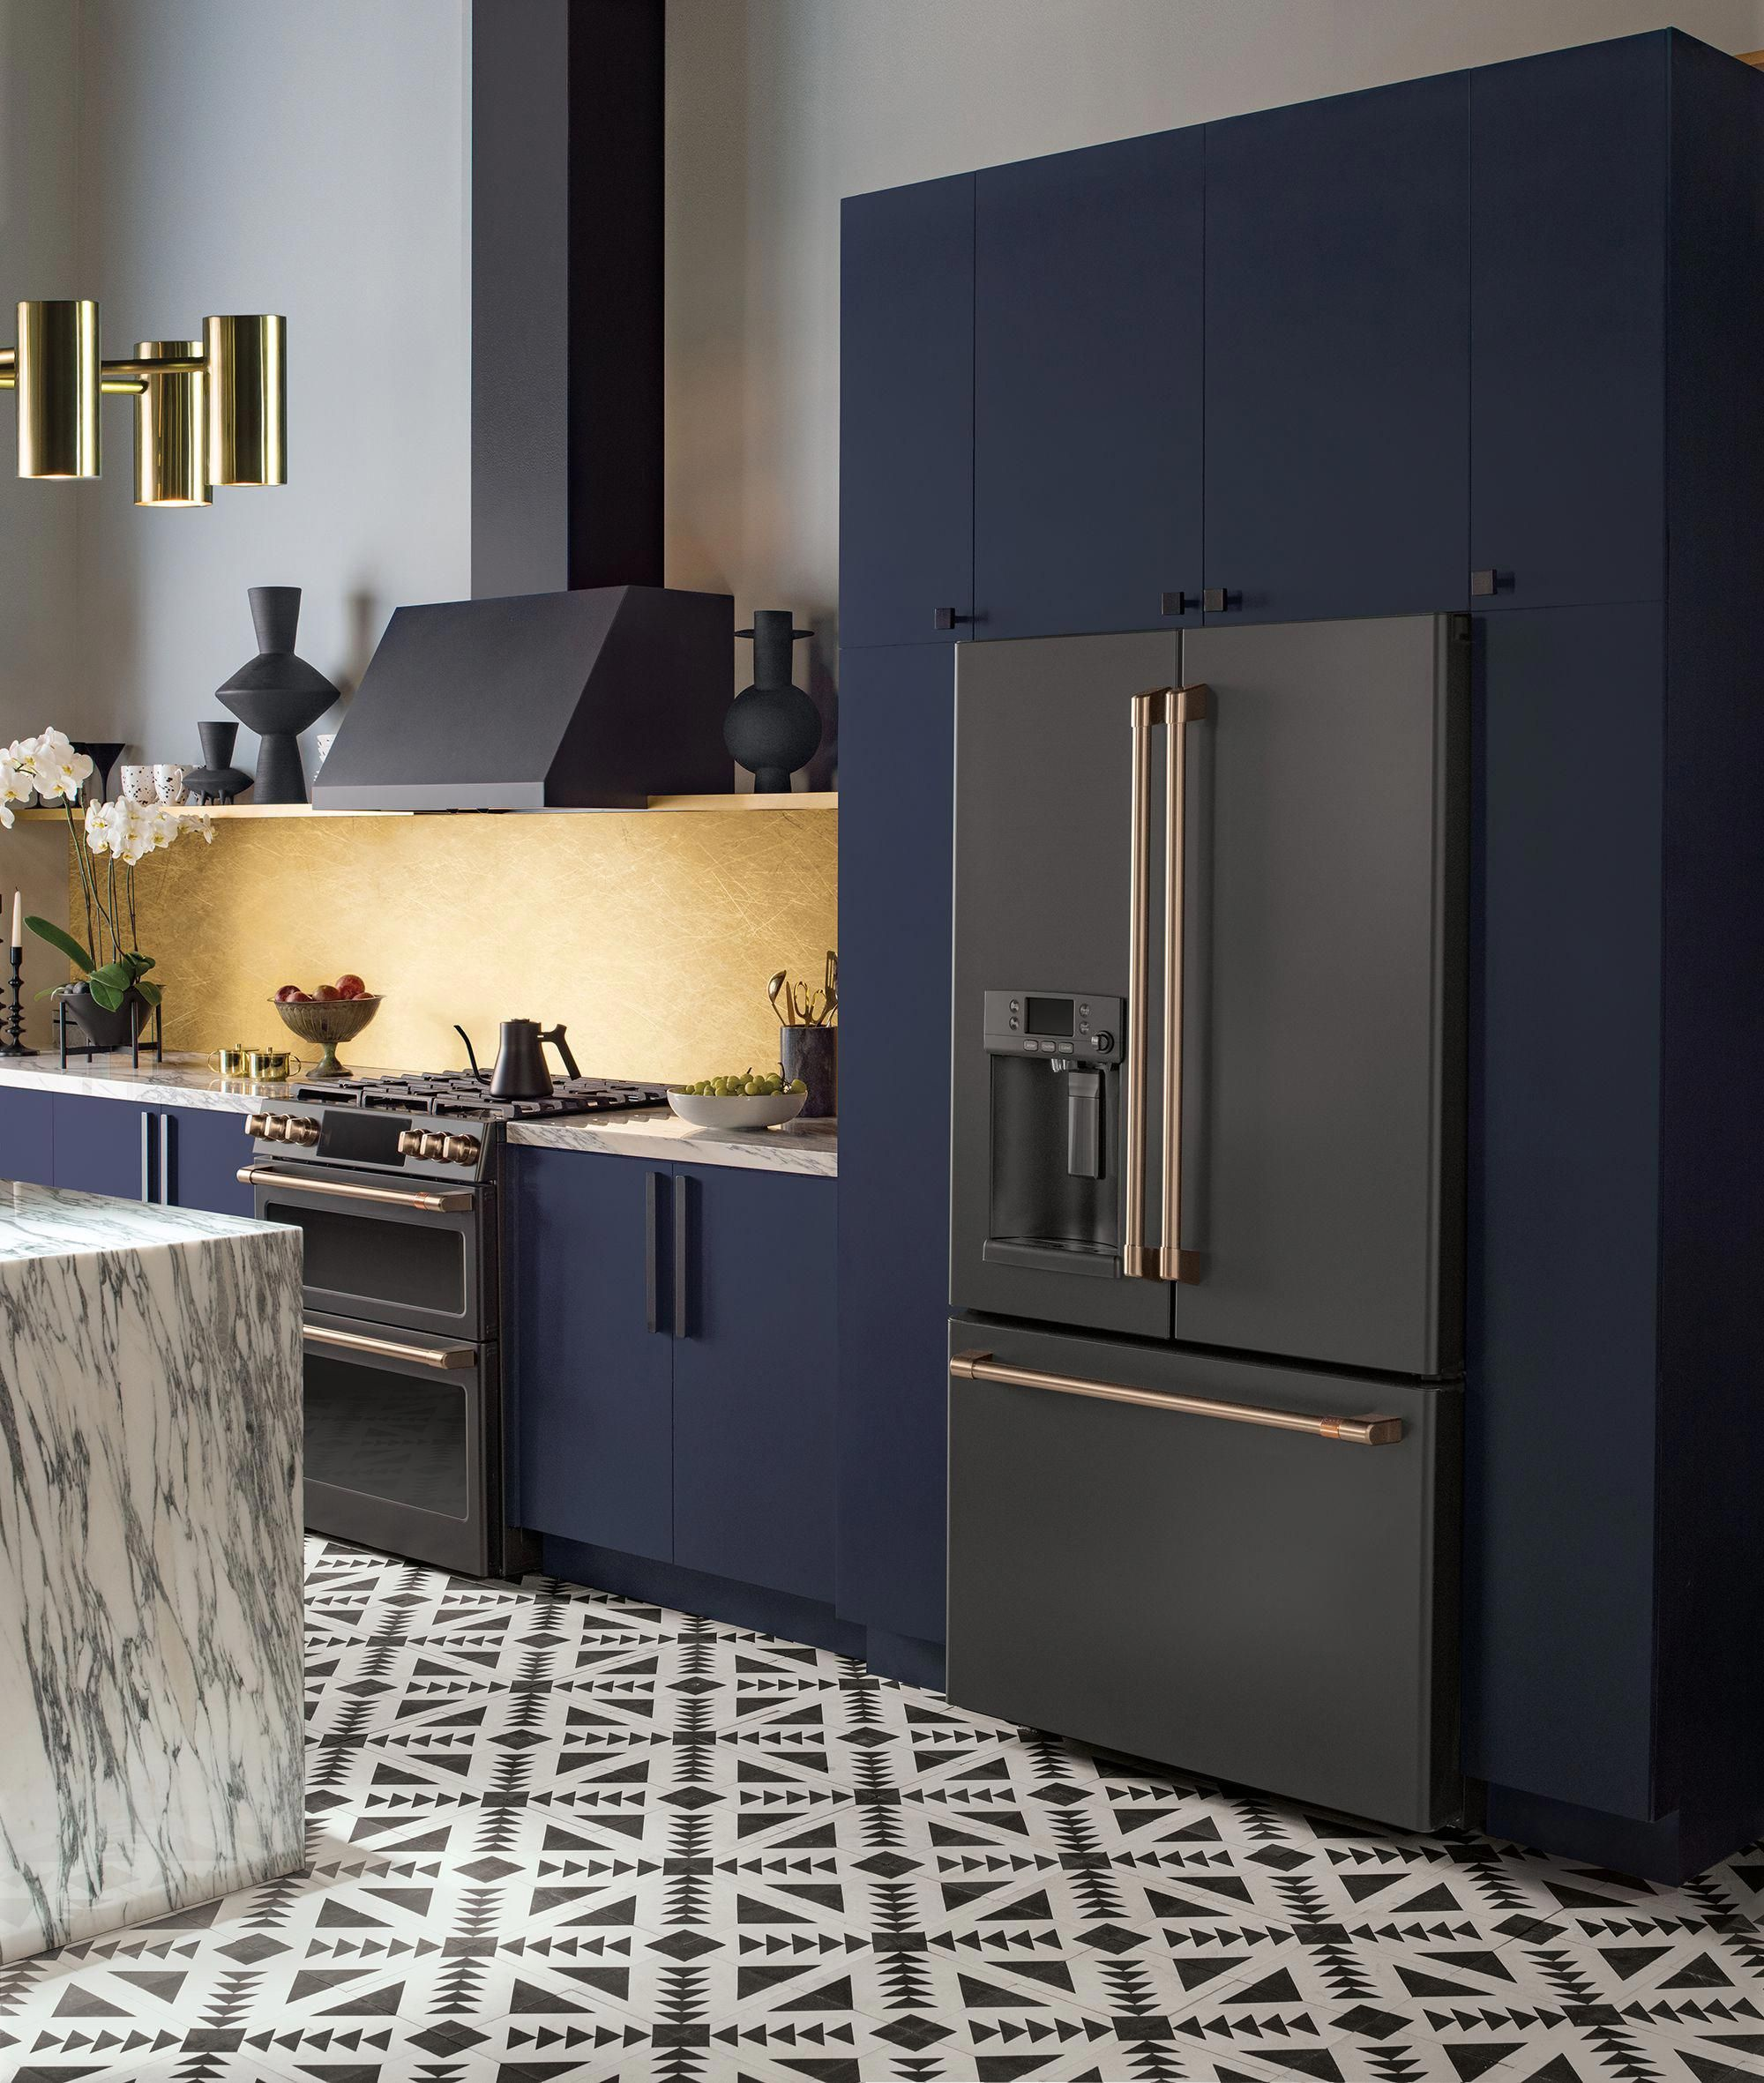 Luxury Modern Kitchen With Midnight Blue Cabinets And Beautiful Cafeappliances Matte Collection B Modern Kitchen Design Interior Design Kitchen Kitchen Design